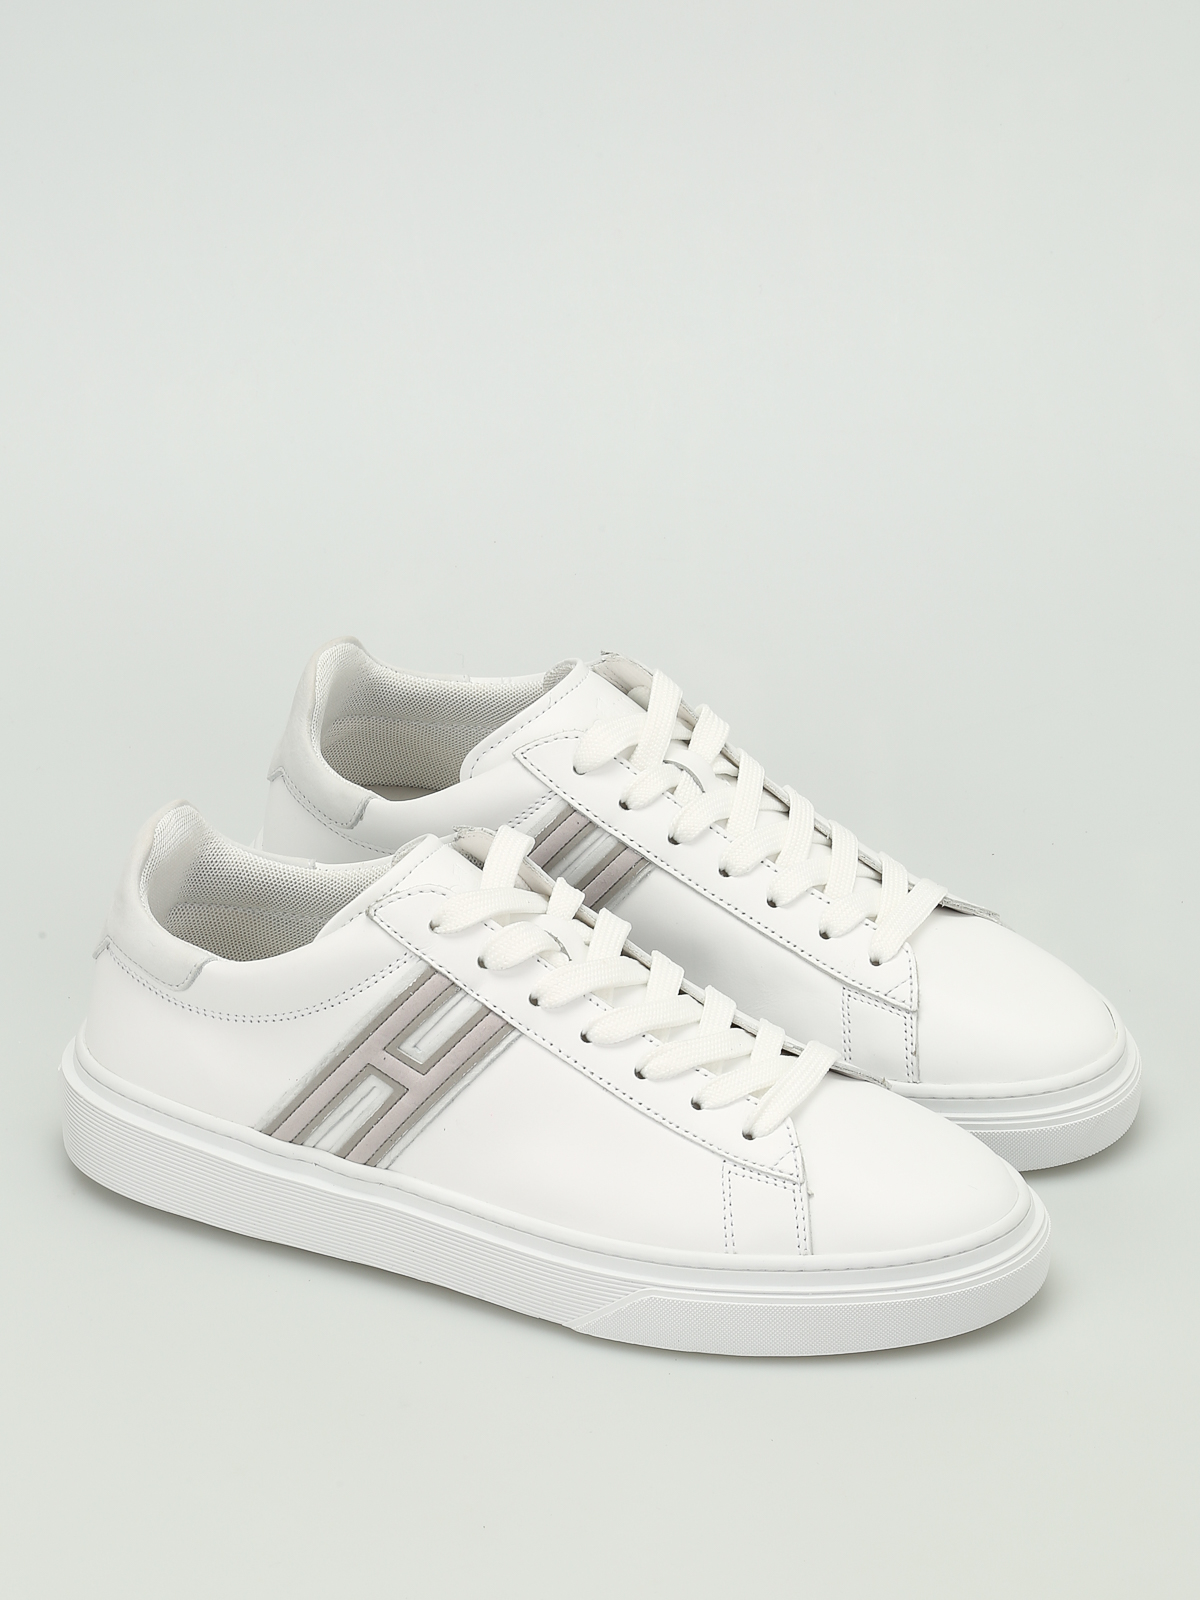 Hogan - H340 leather low top trainers - trainers - HXM3400J300C8KB001